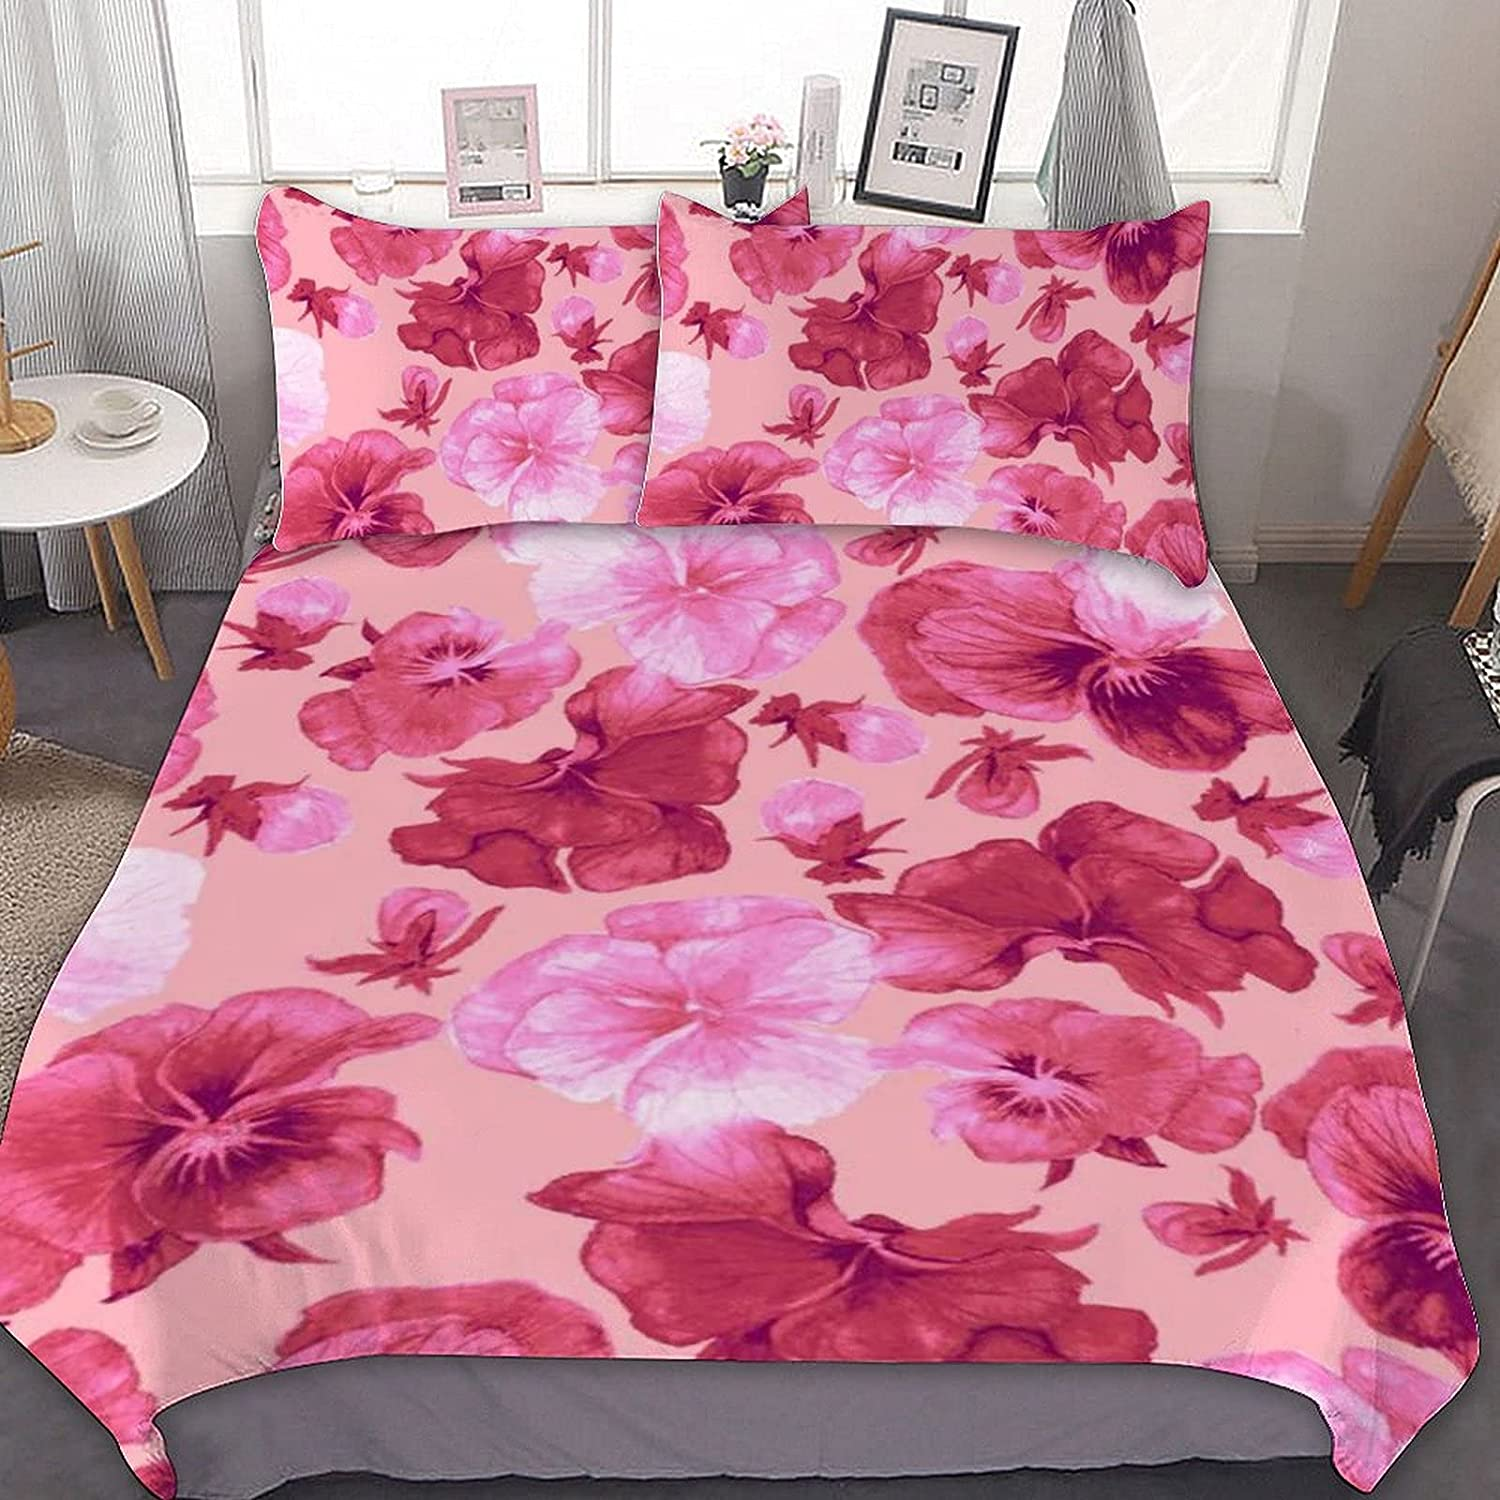 PNNUO Pink Flower Queen Bed Set King Full Max 41% OFF Max 82% OFF Size Twin Comforter Se